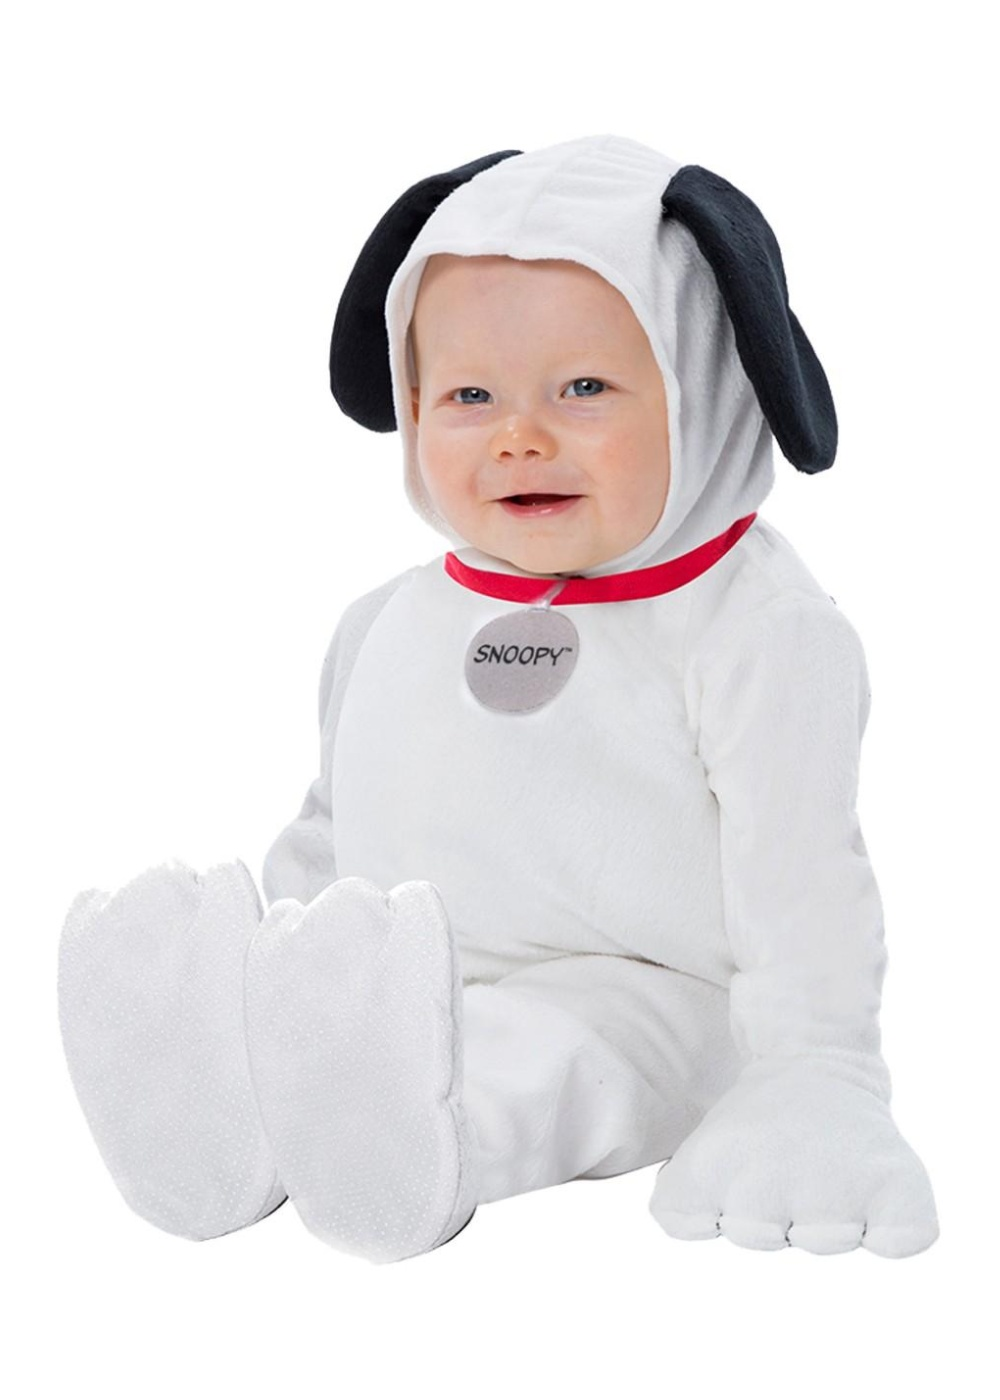 Peanuts Snoopy Baby Costume Tv Show Costumes